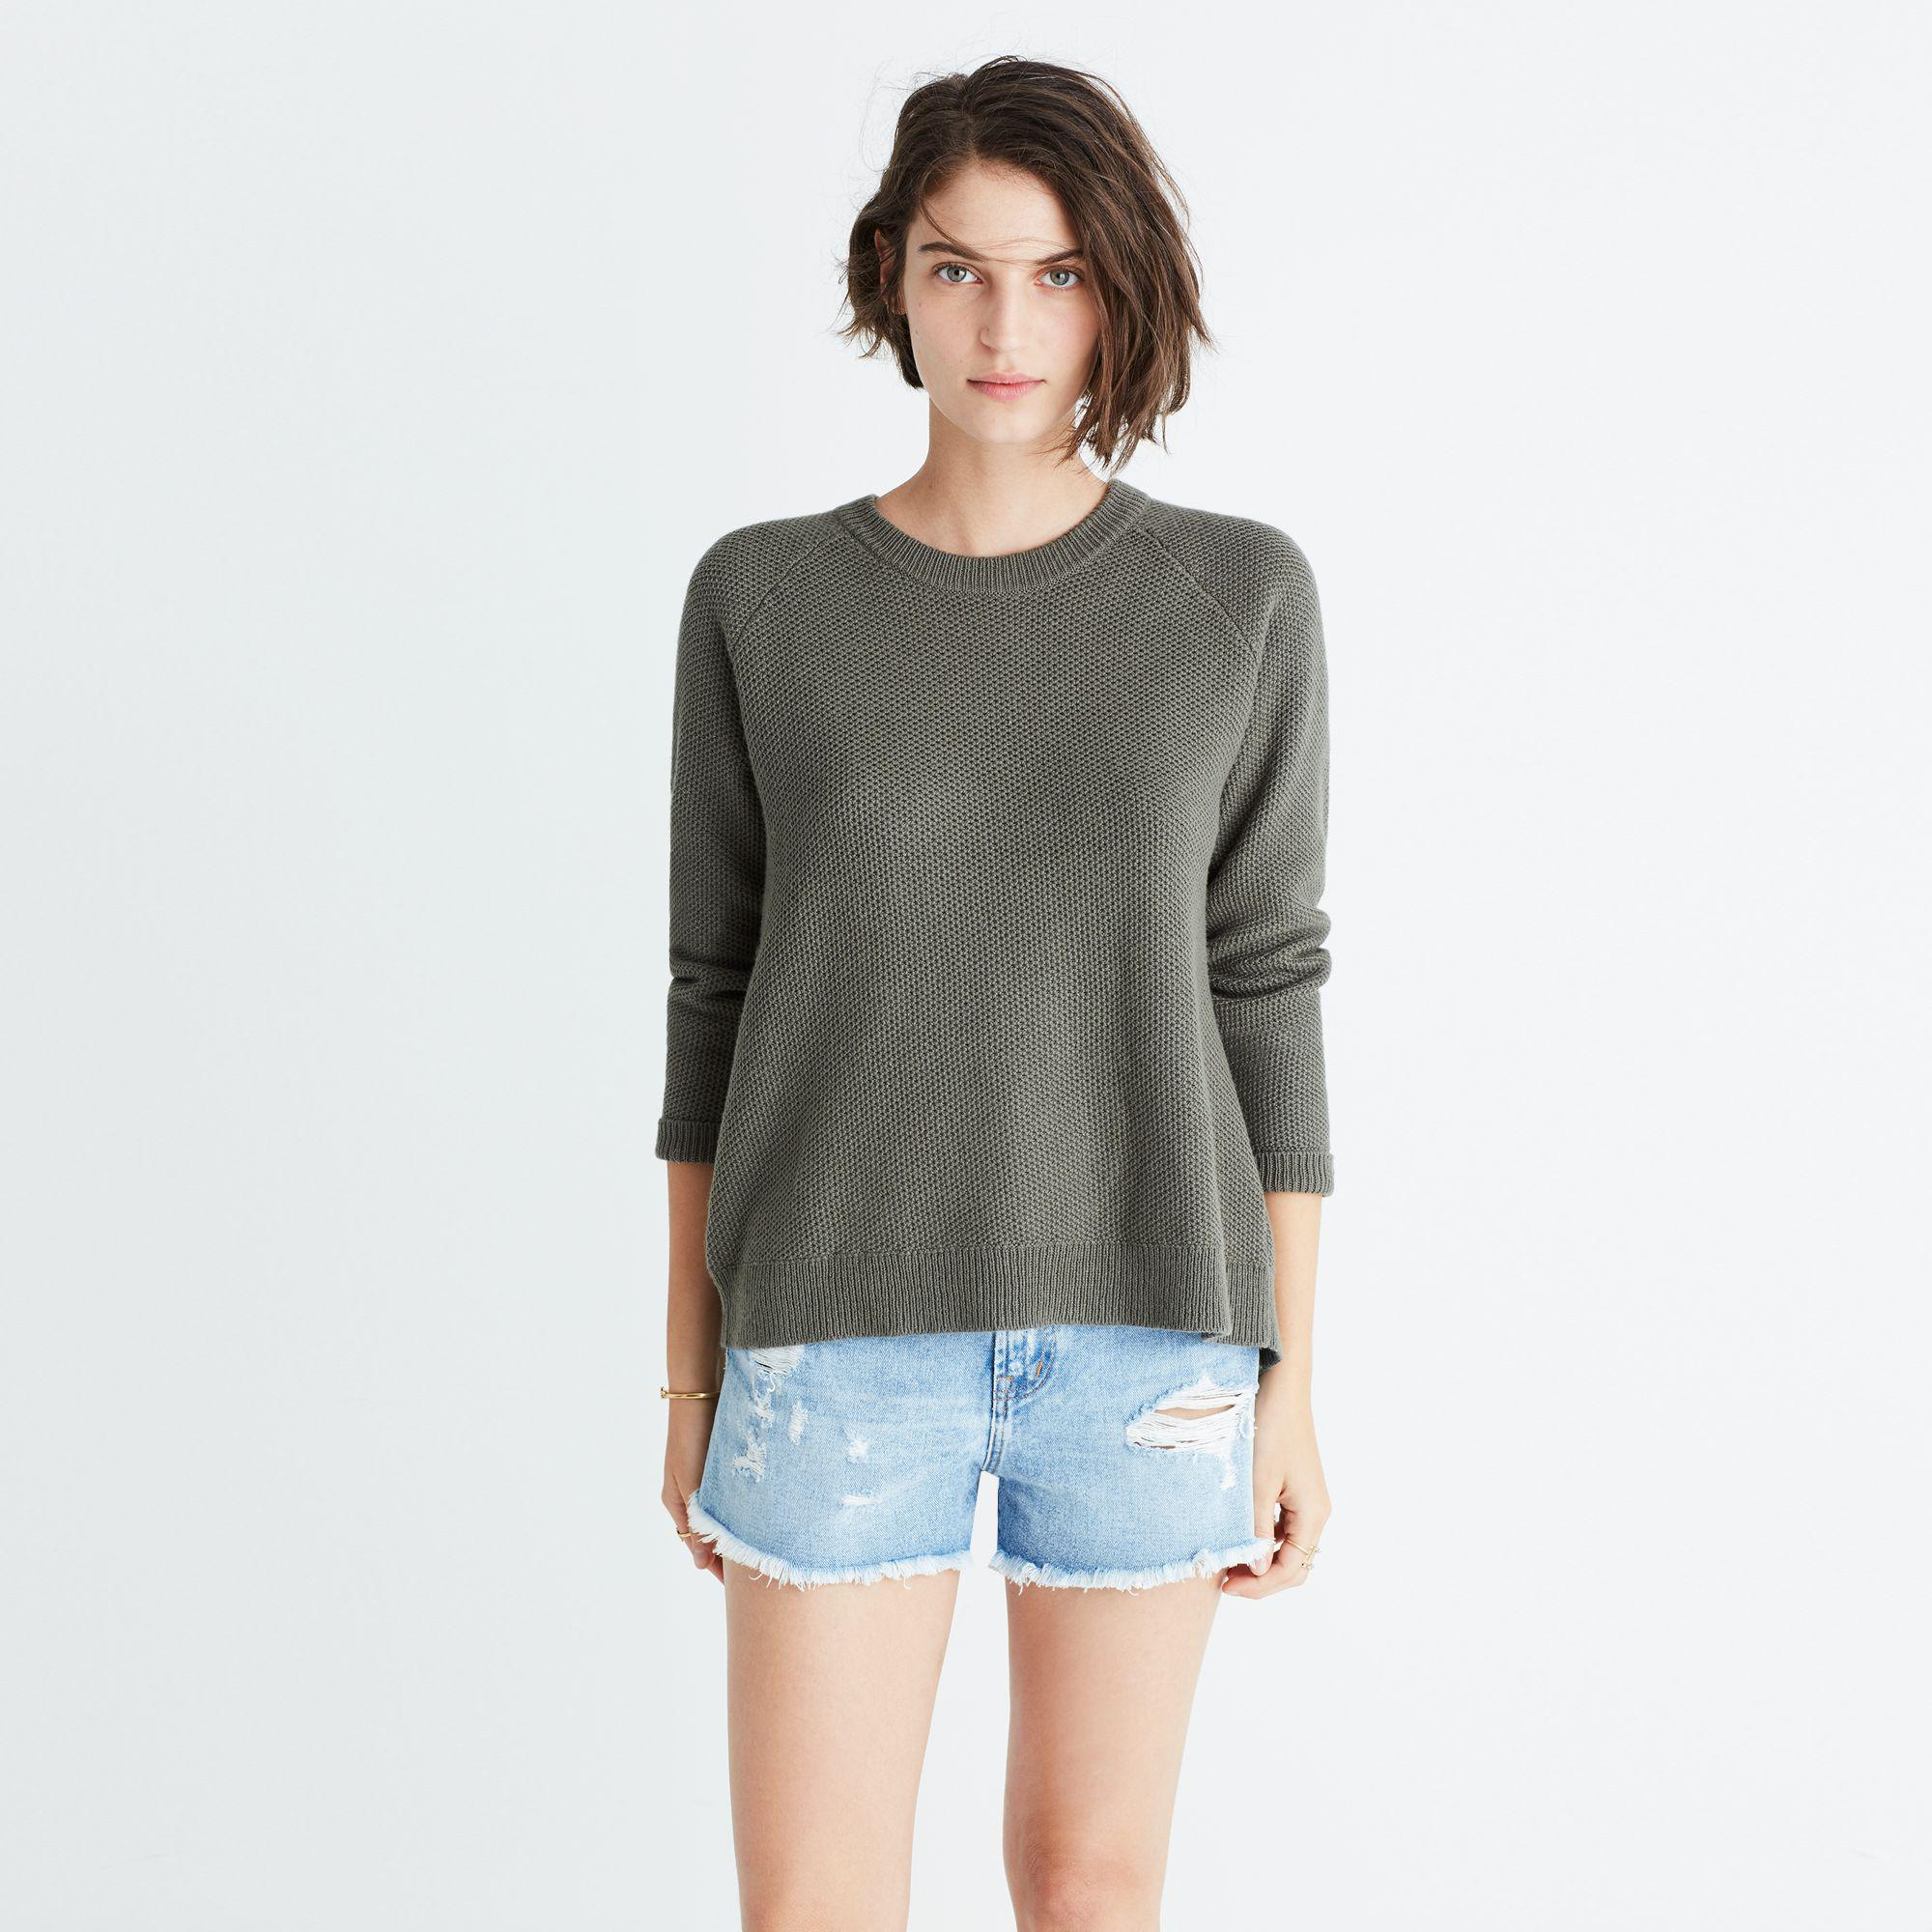 Madewell Province Cross-back Pullover Sweater in Green | Lyst